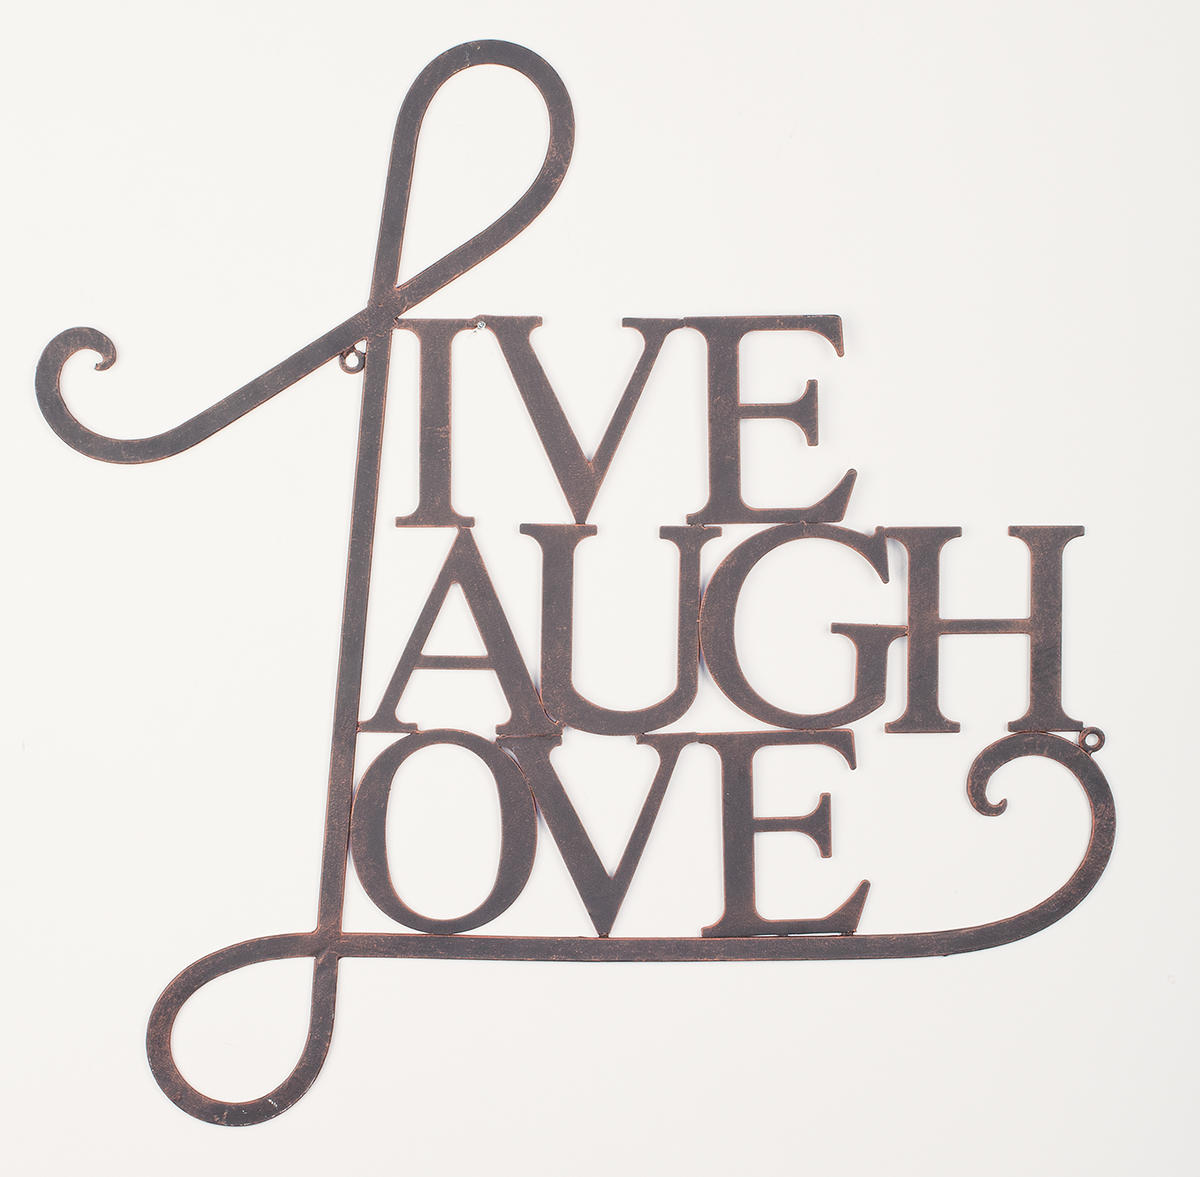 Live laugh love wall art tripar international inc for Live laugh love wall art